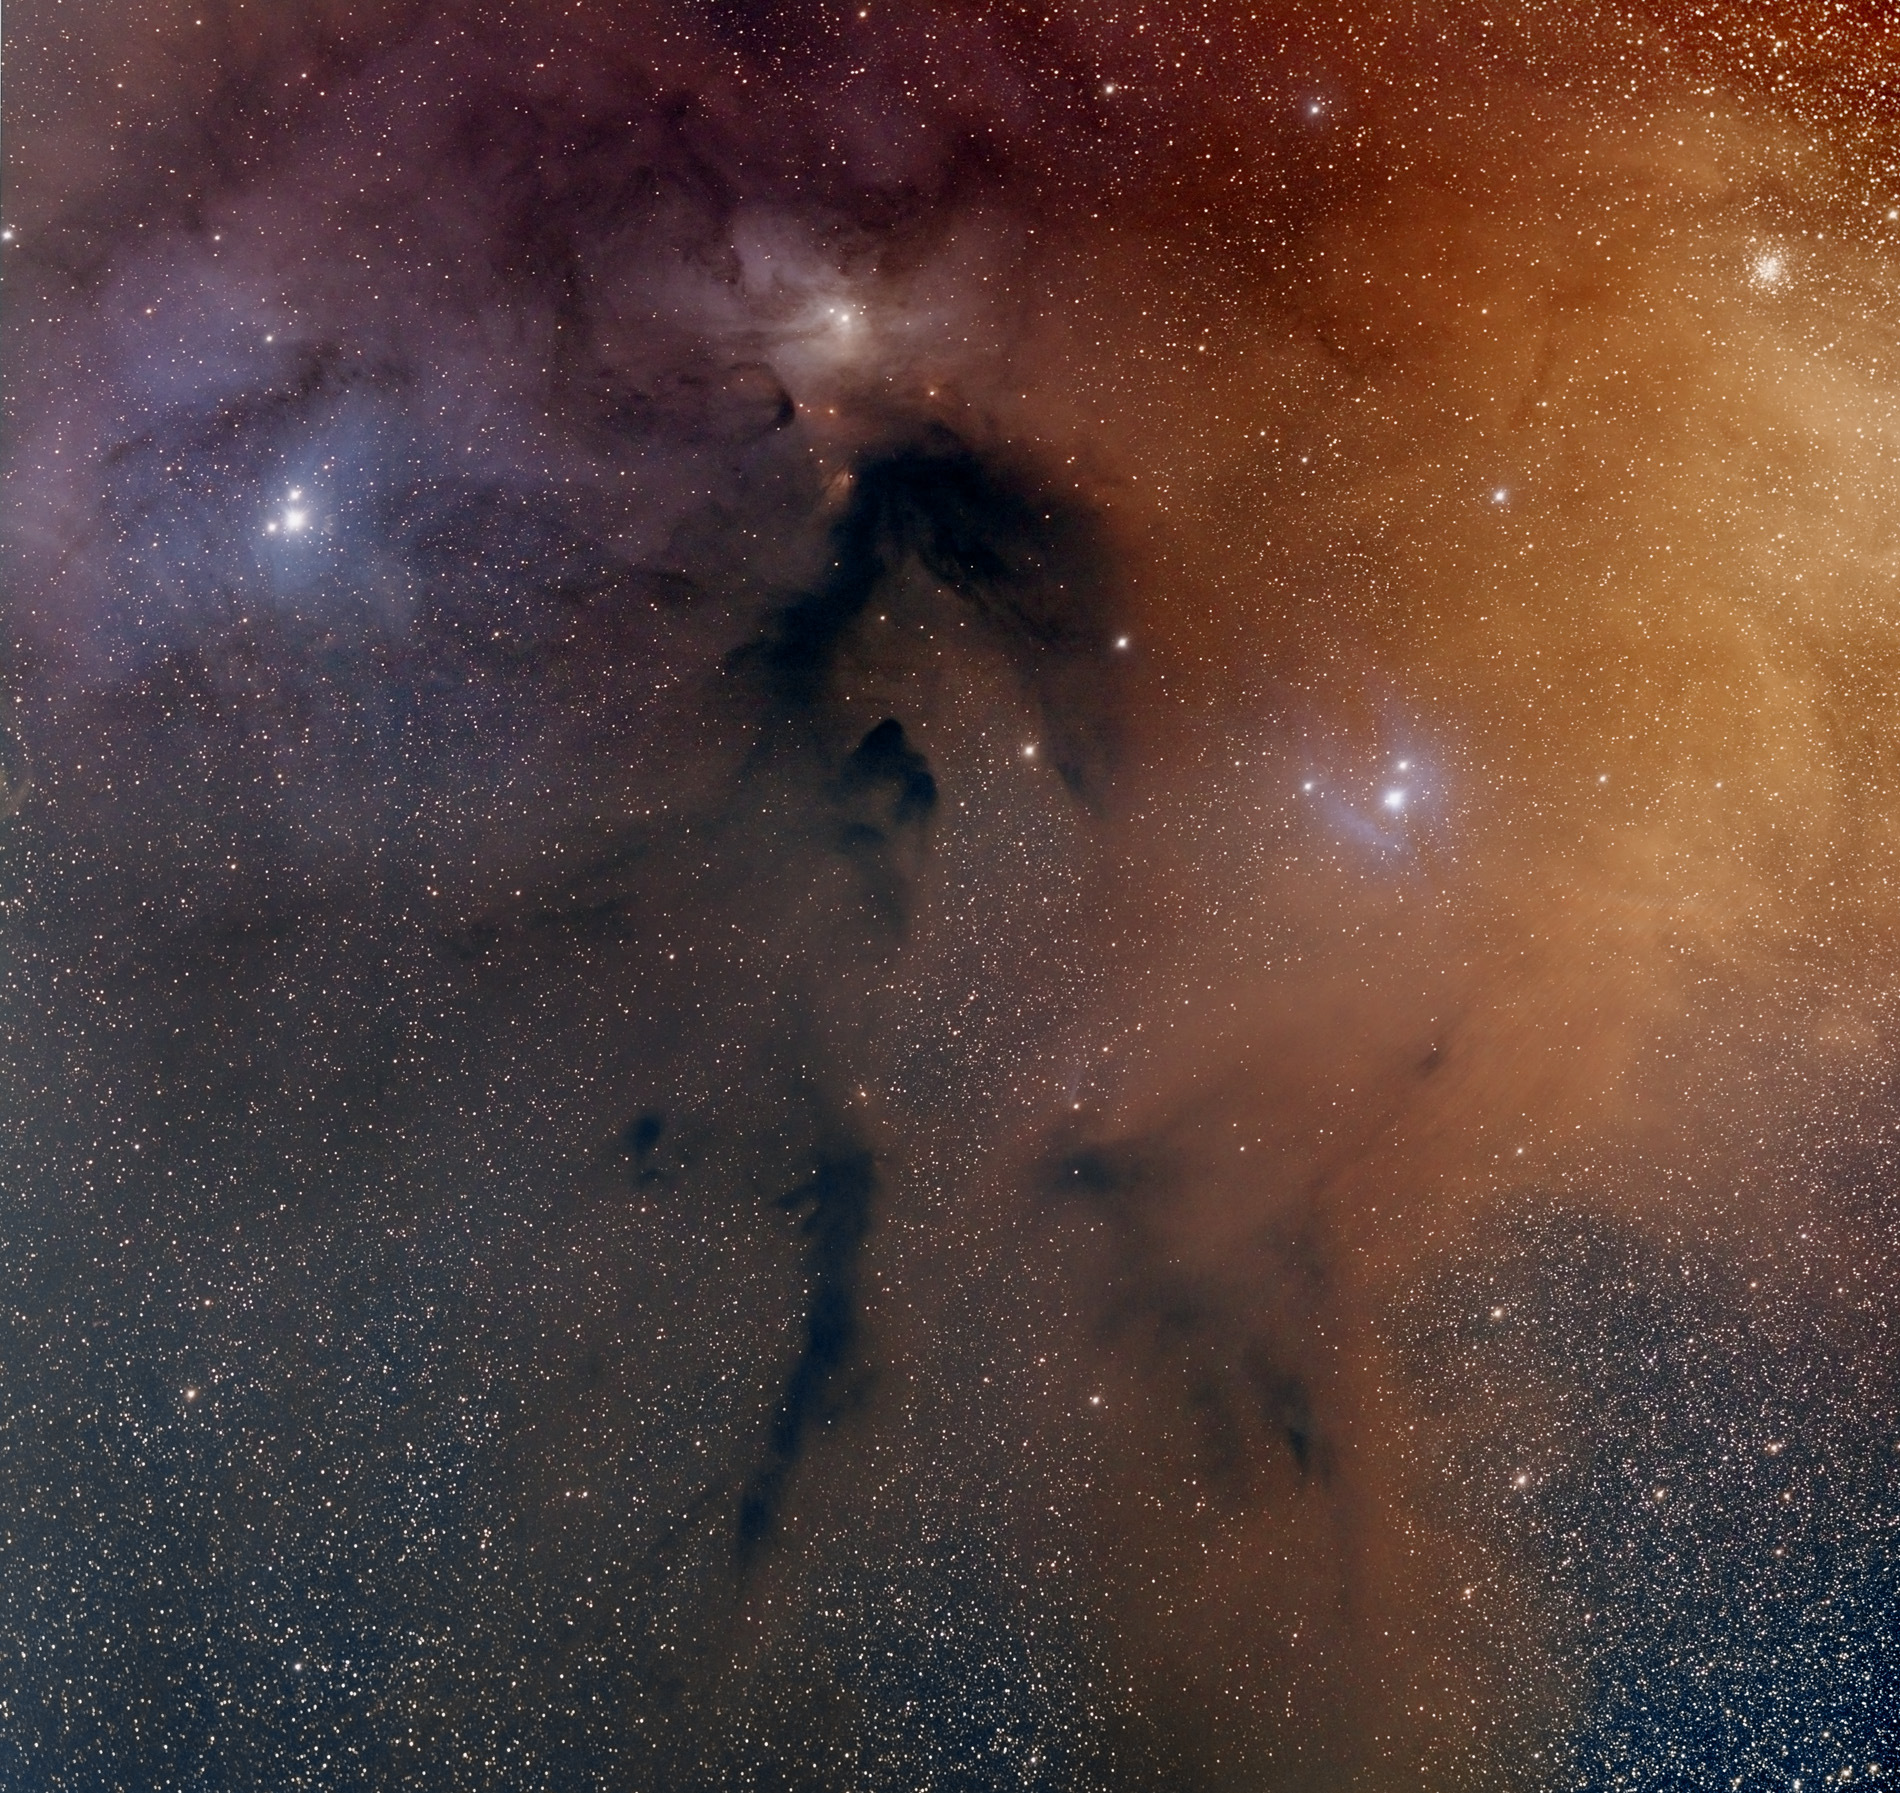 This is another image from Bryan Cogdell who once again used a full-frame QHY11 CCD camera for this two-panel mosaic of the Rho Ophiuchi region, where each panel was composed of 25 two-minute shots. The mount was a Celestron CGEM DX. Image credit: © Bryan Cogdell, used with permission.